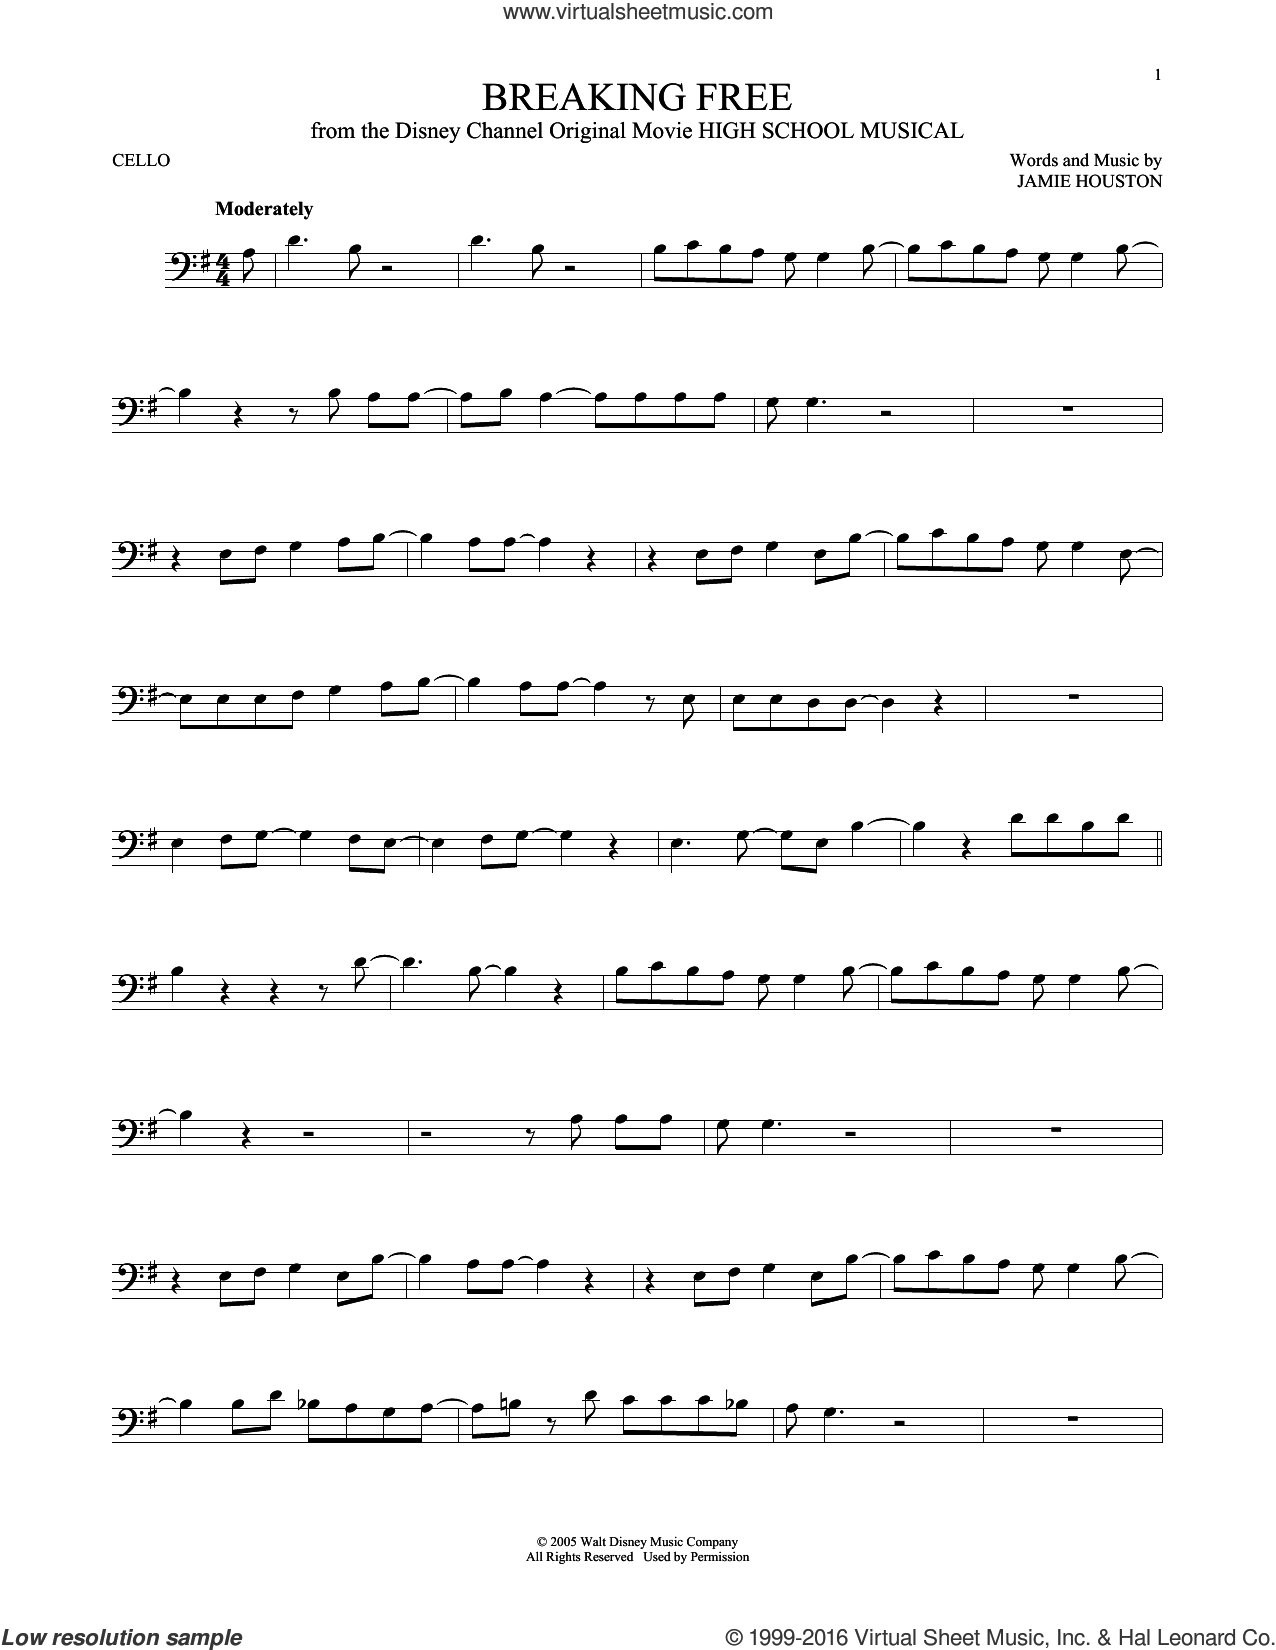 Breaking Free (from High School Musical) sheet music for cello solo by Jamie Houston and Zac Efron and Vanessa Anne Hudgens, intermediate skill level